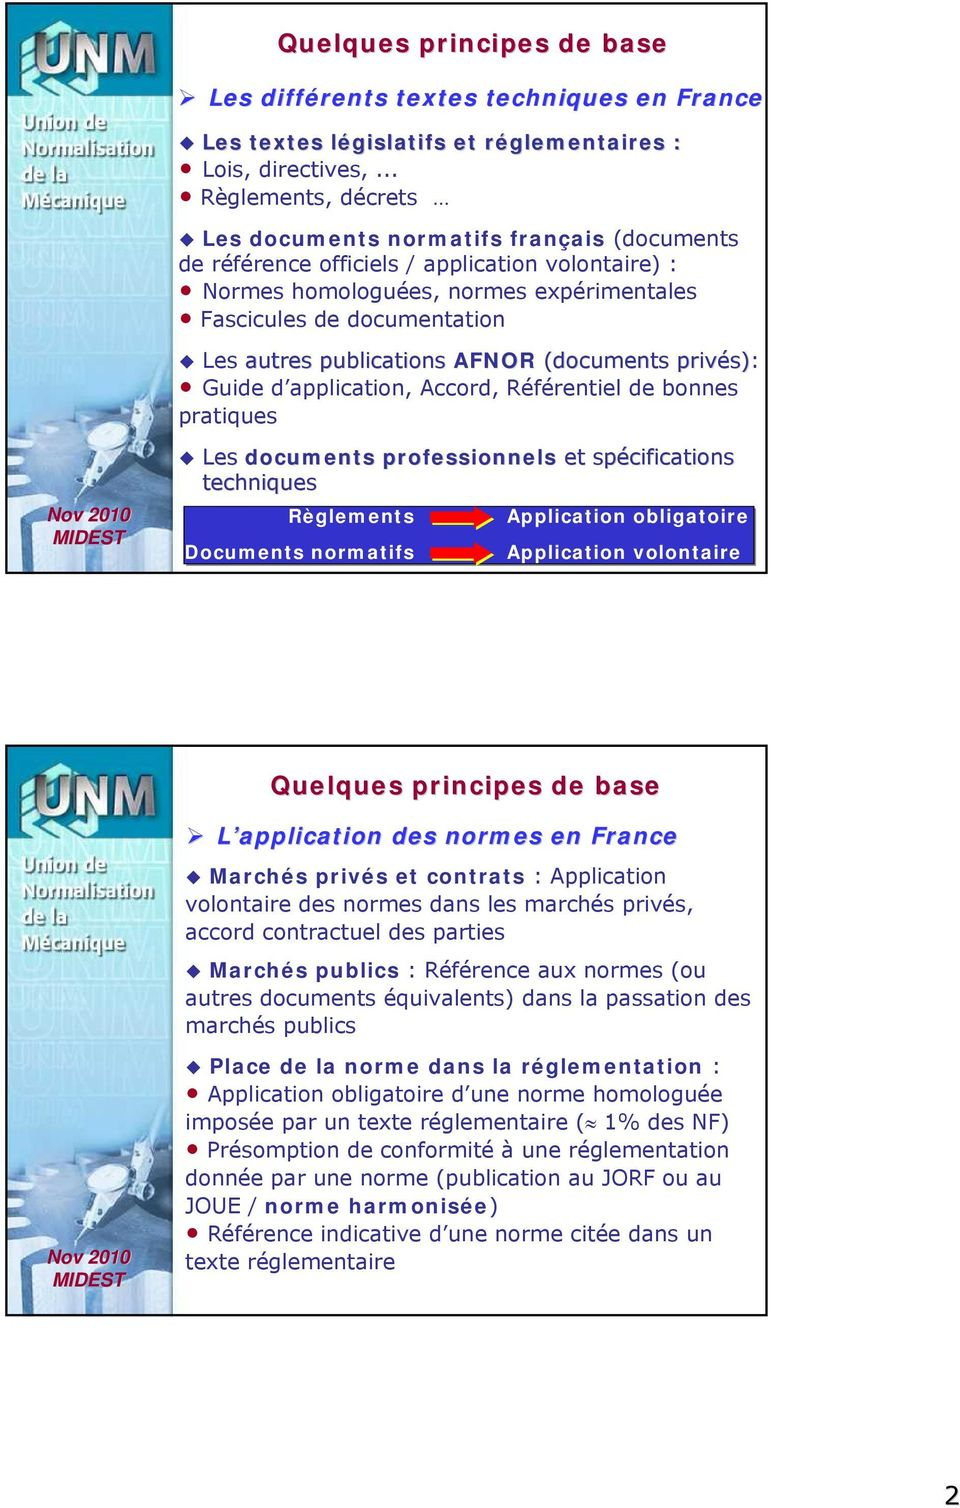 publications AFNOR (ocuments privés) s): Guie application, Accor, Référentiel e bonnes pratiques Les ocuments professionnels et spécifications techniques Règlements Application obligatoire Documents